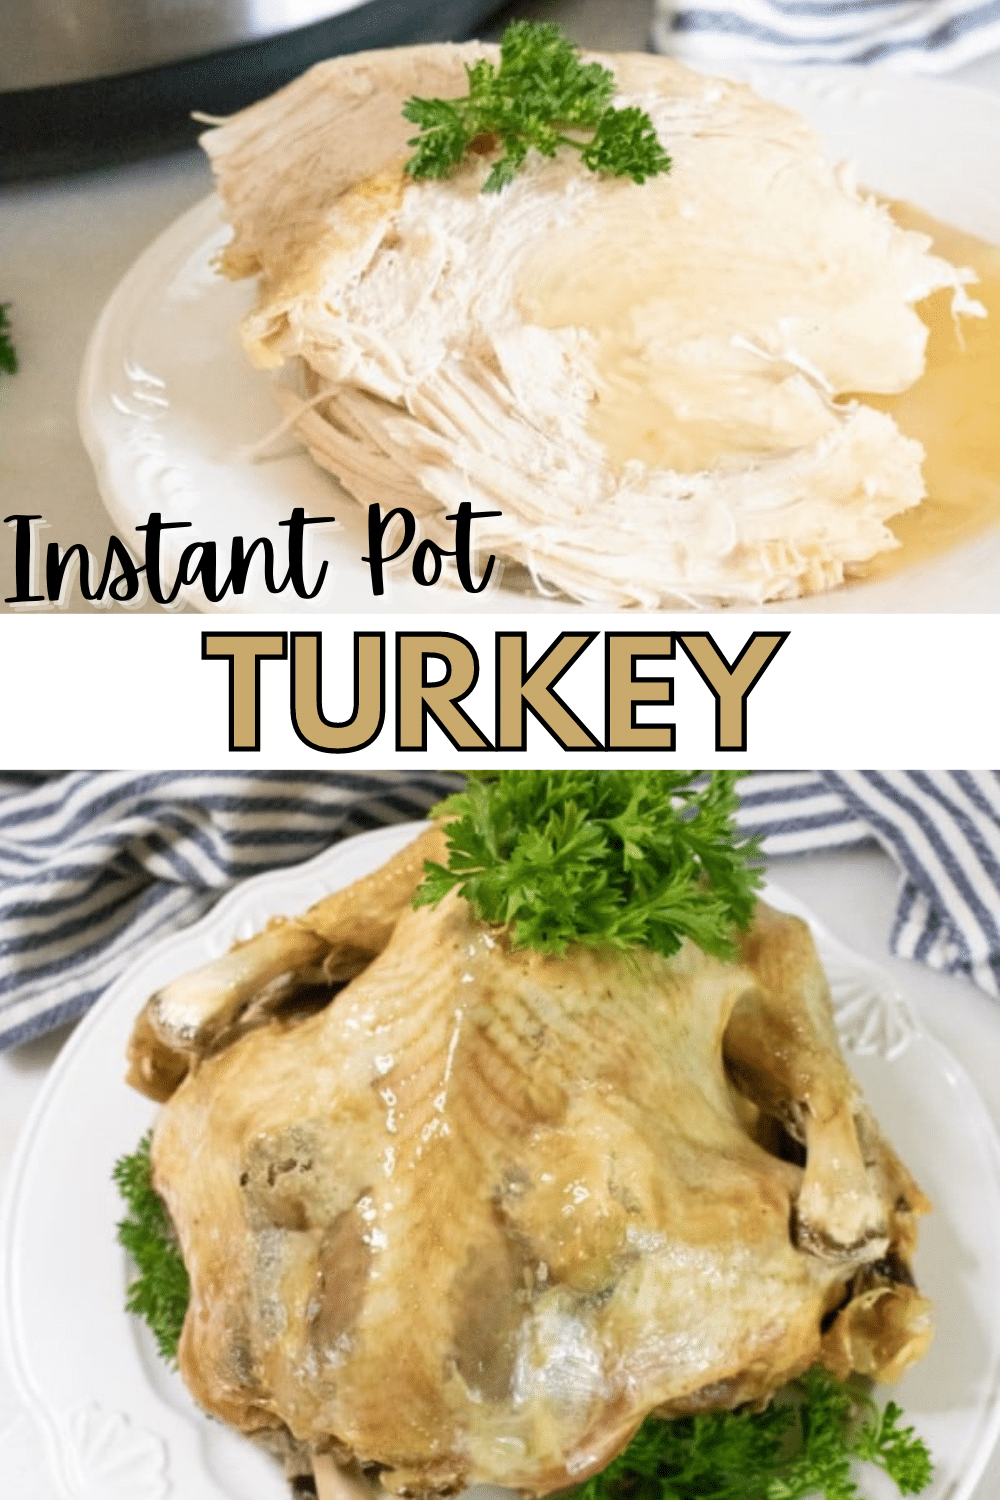 This Instant Pot Turkey turns out perfect and leaves your oven open for side dishes! #Thanksgiving #instantpot #turkey via @wondermomwannab